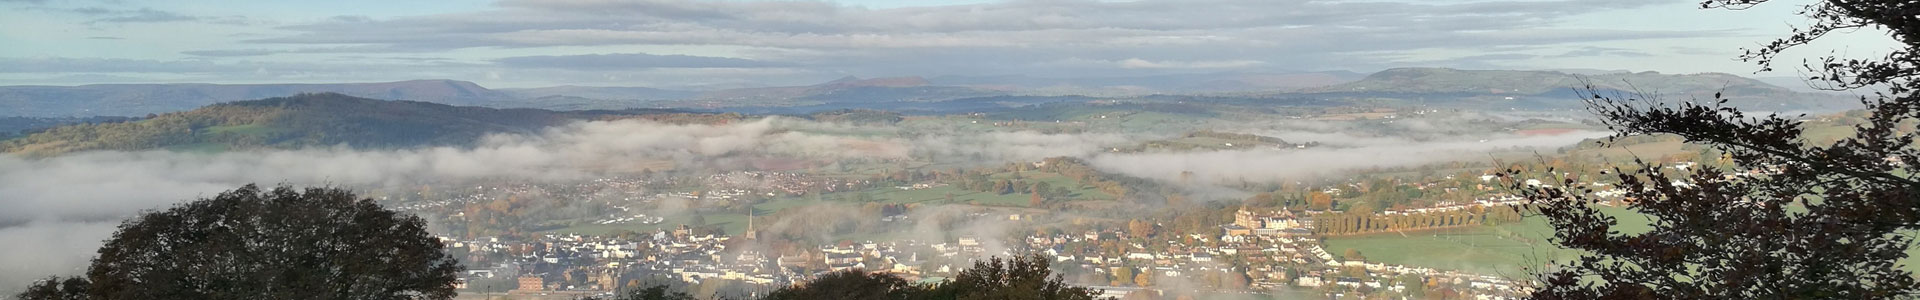 View from Kymin, Monmouth